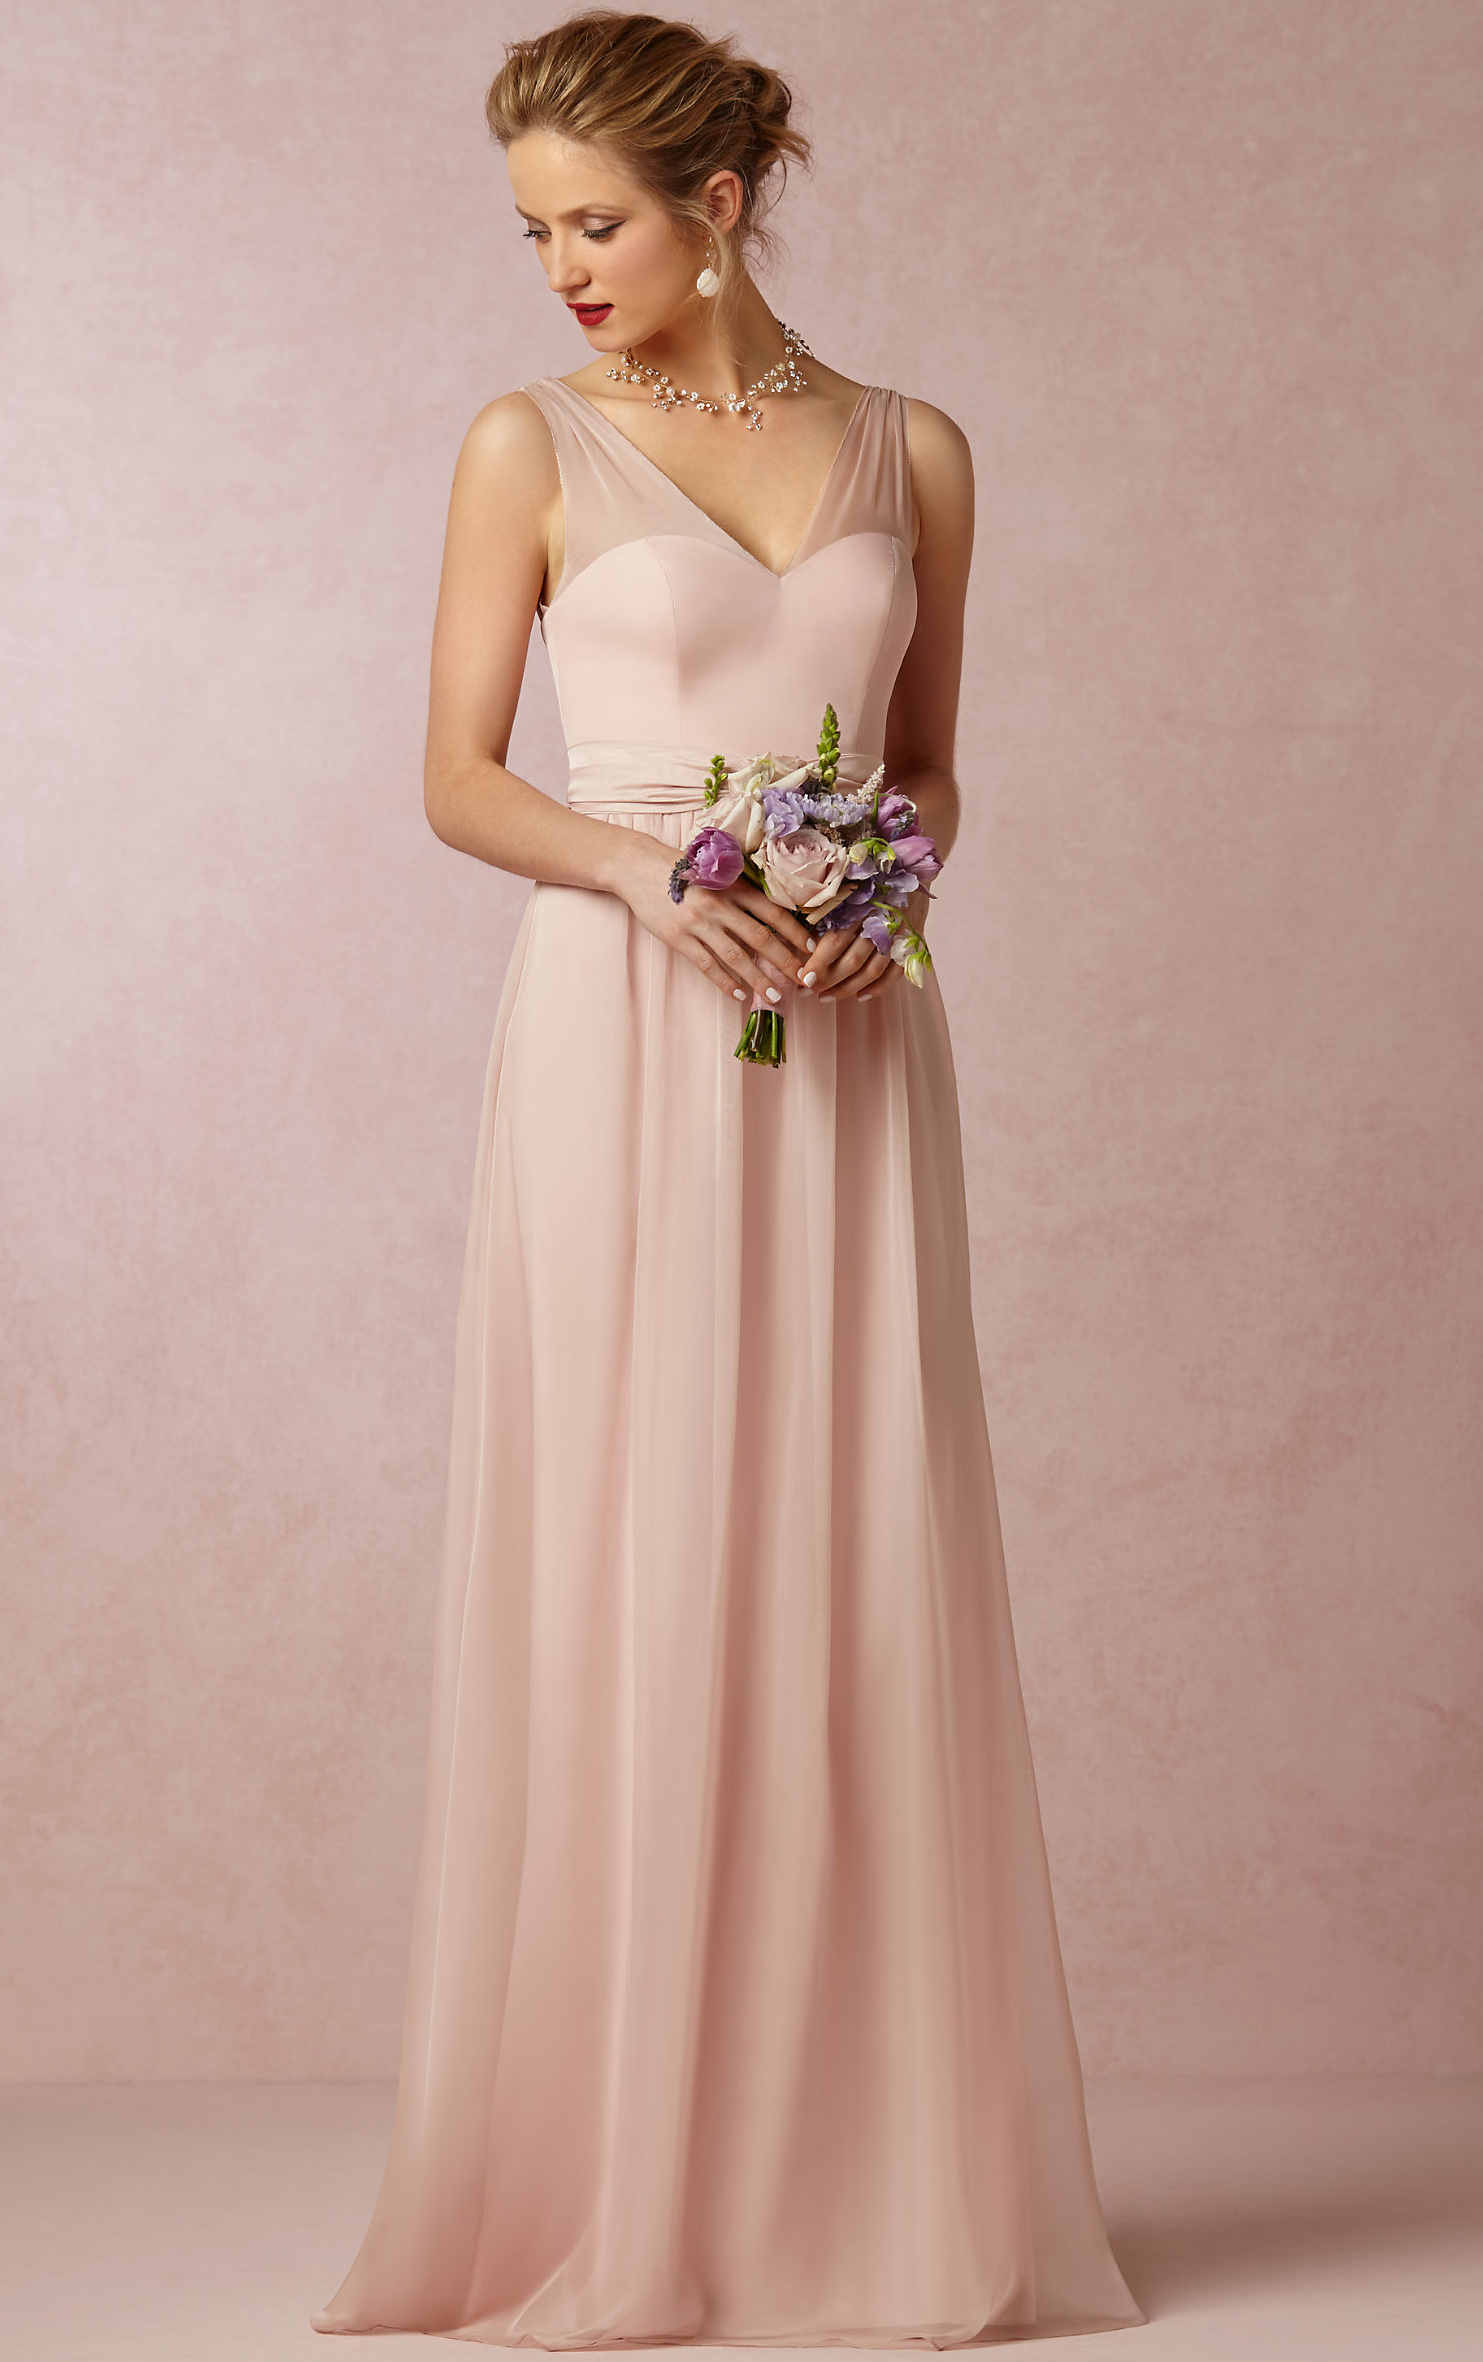 http://www.aislestyle.co.uk/vneck-aline-sleeveless-natural-floorlength-bridesmaid-dresses-p-3529.html